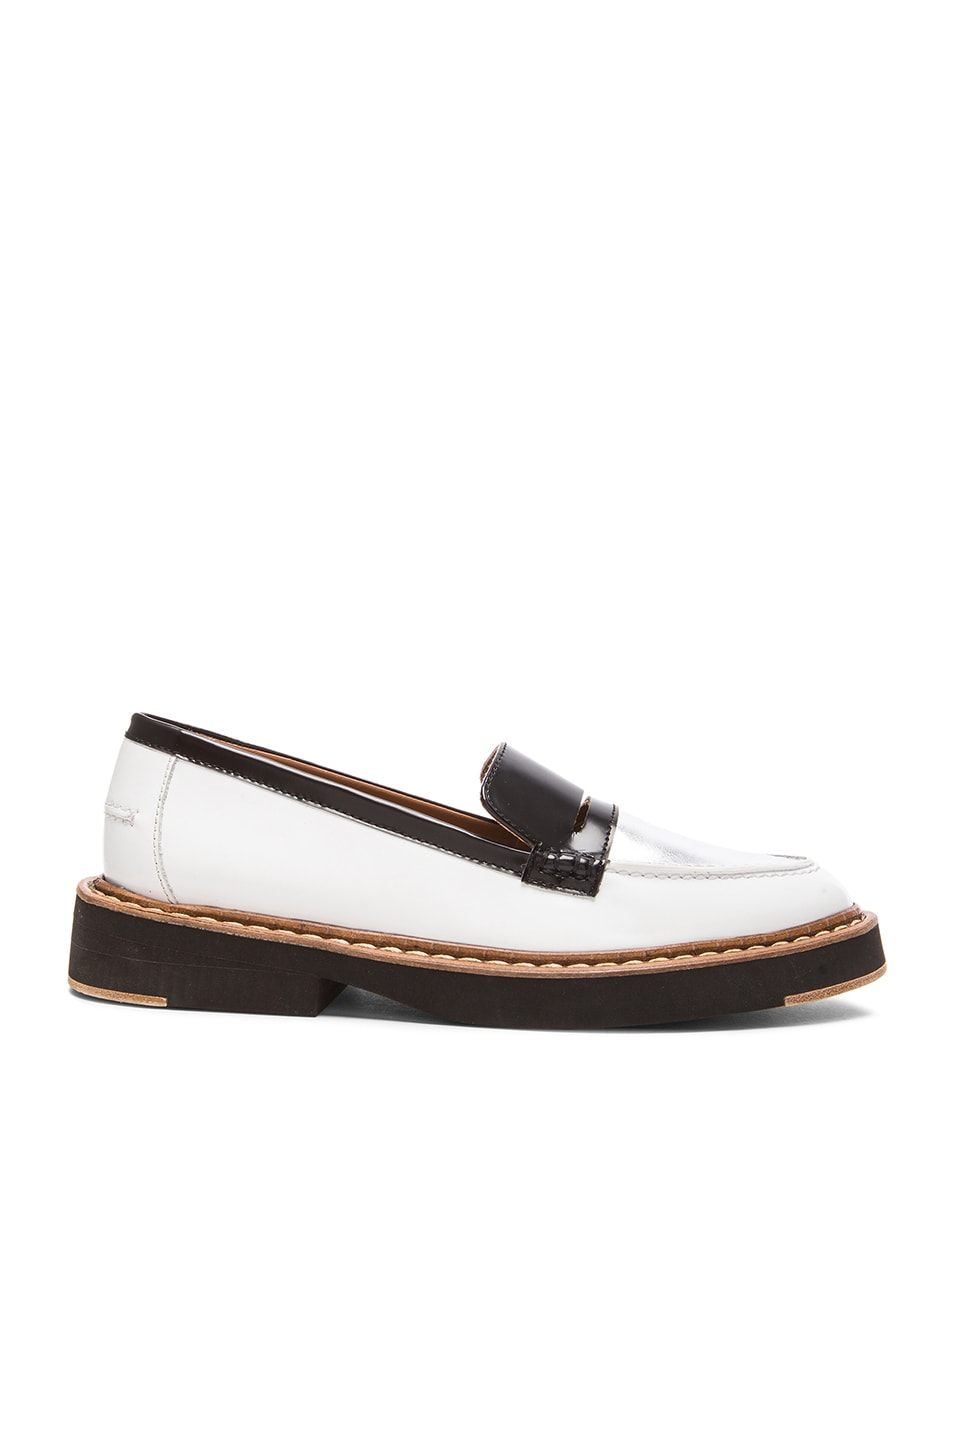 Image 1 of Flamingos Walton Leather Loafers in Black, Silver, & White